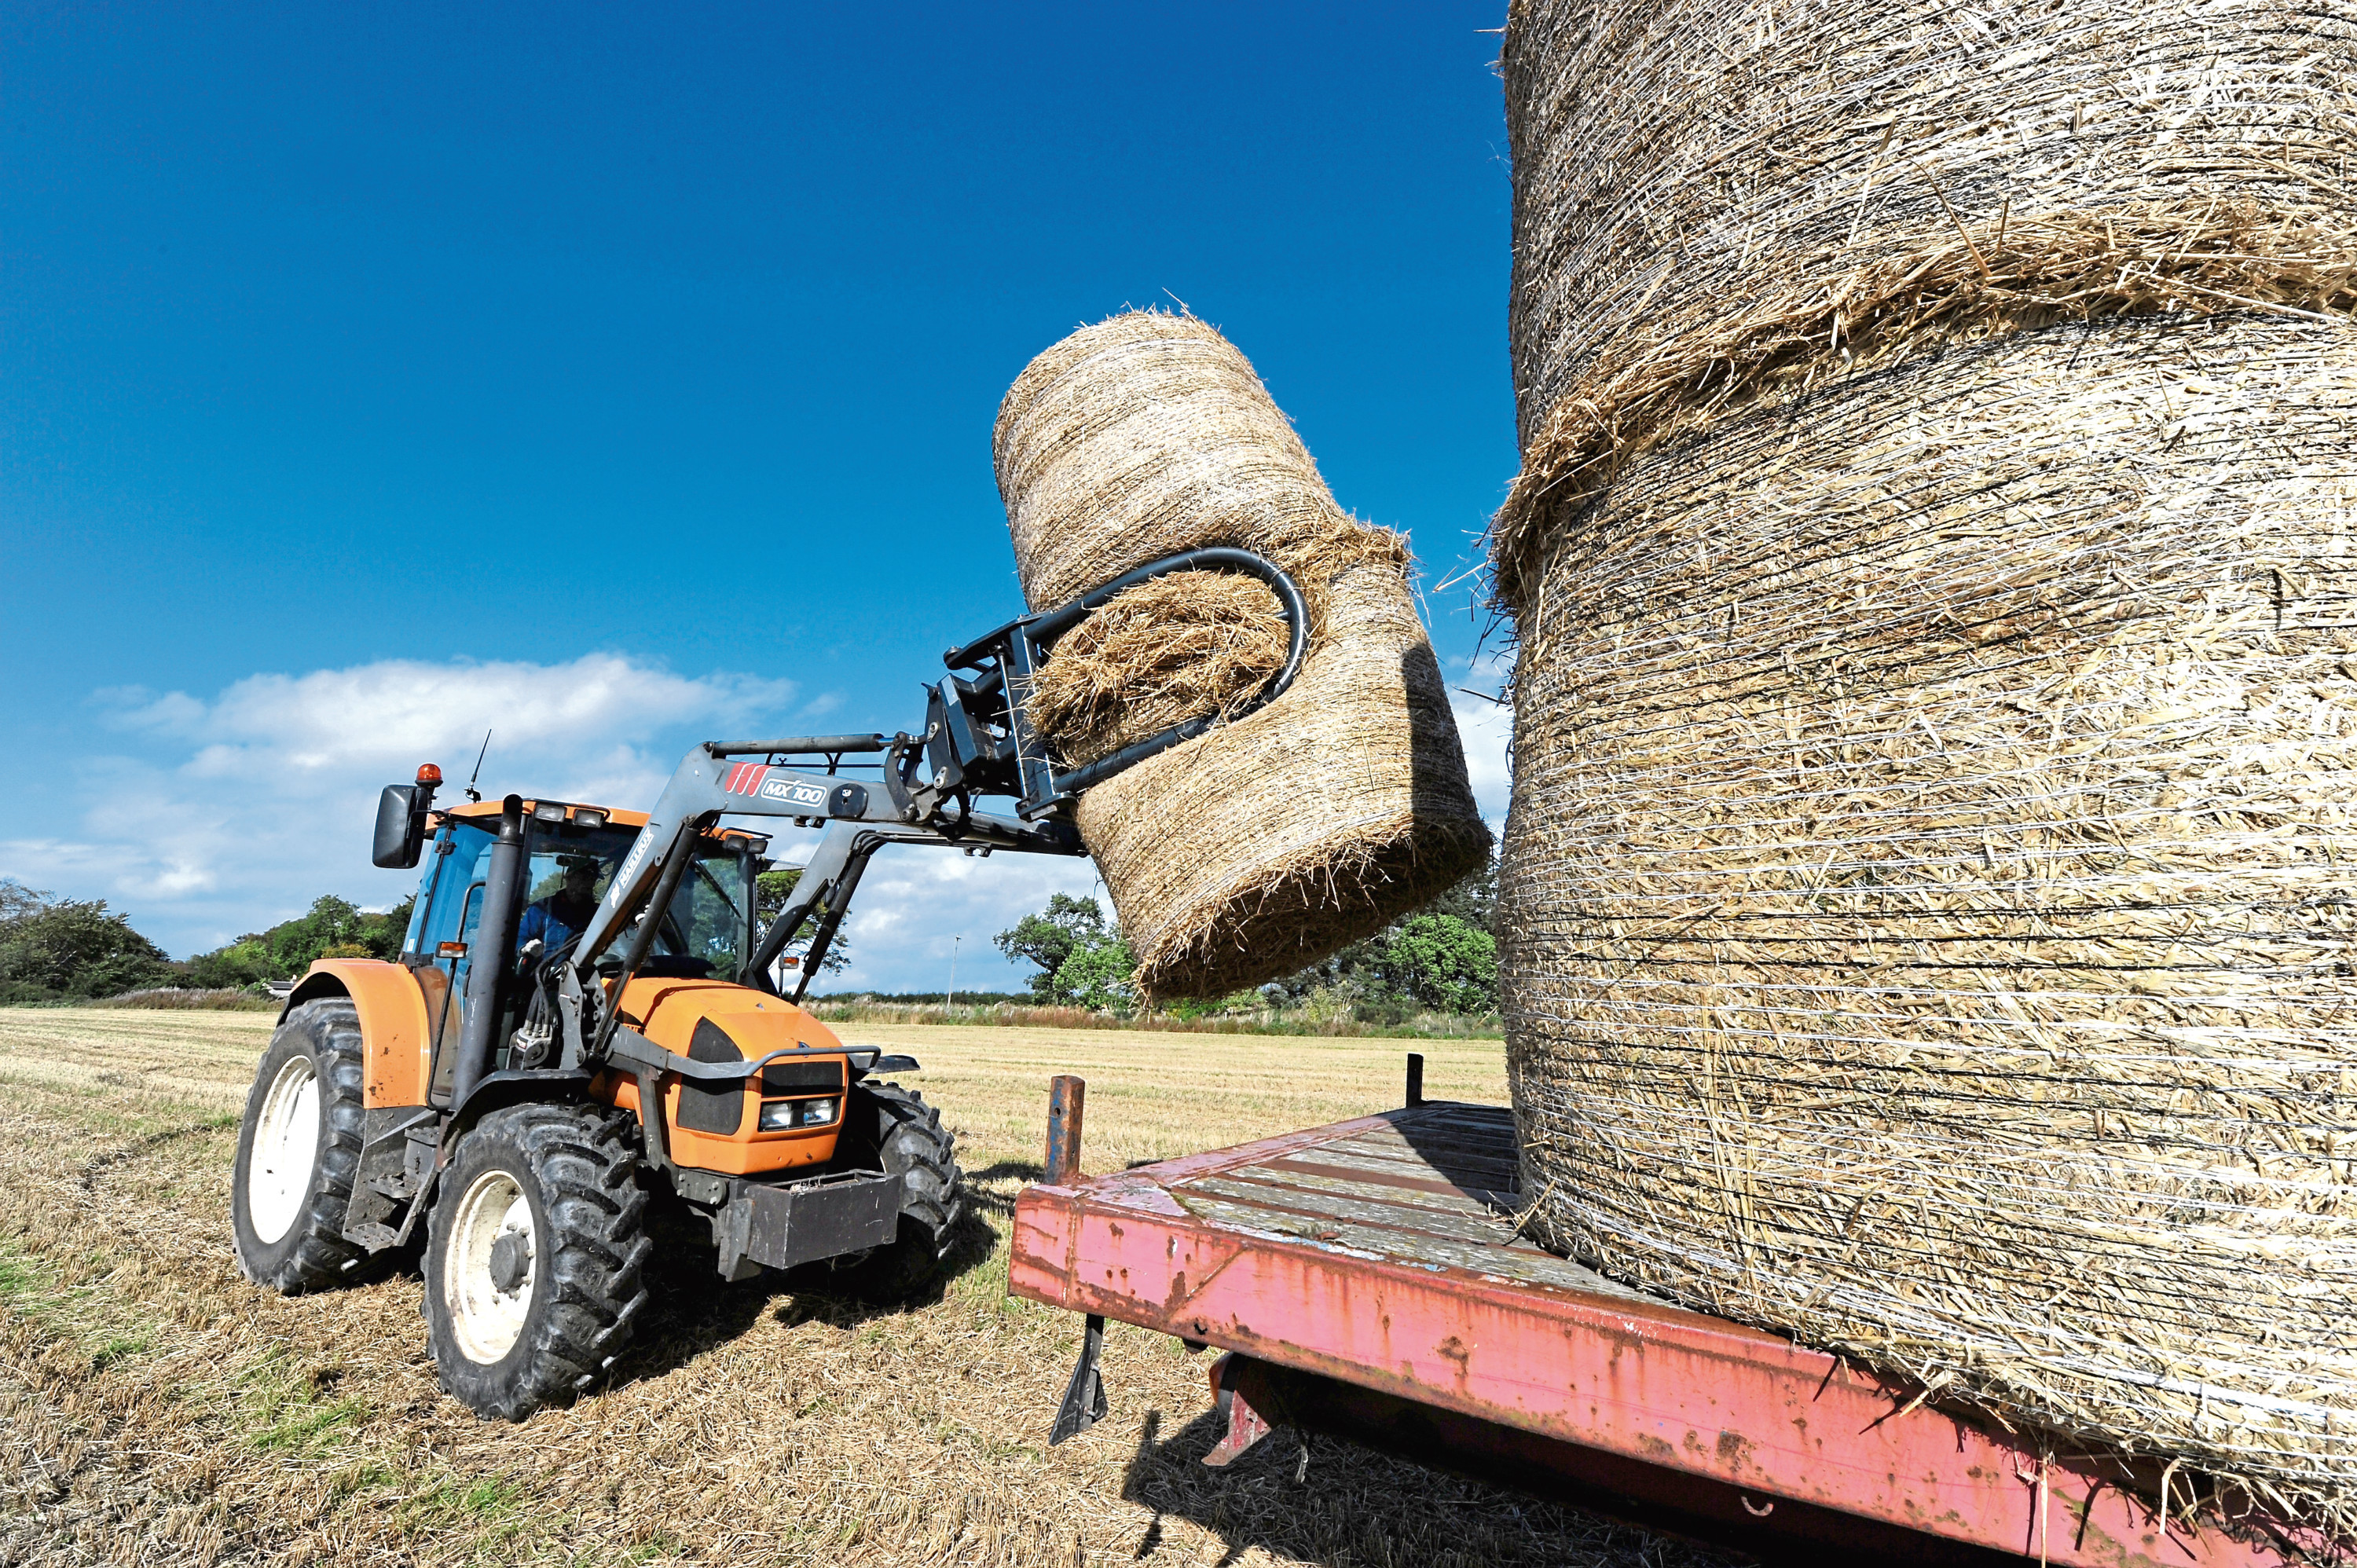 Farmers are being told to plan ahead to ensure they have adequate straw and feed supplies.